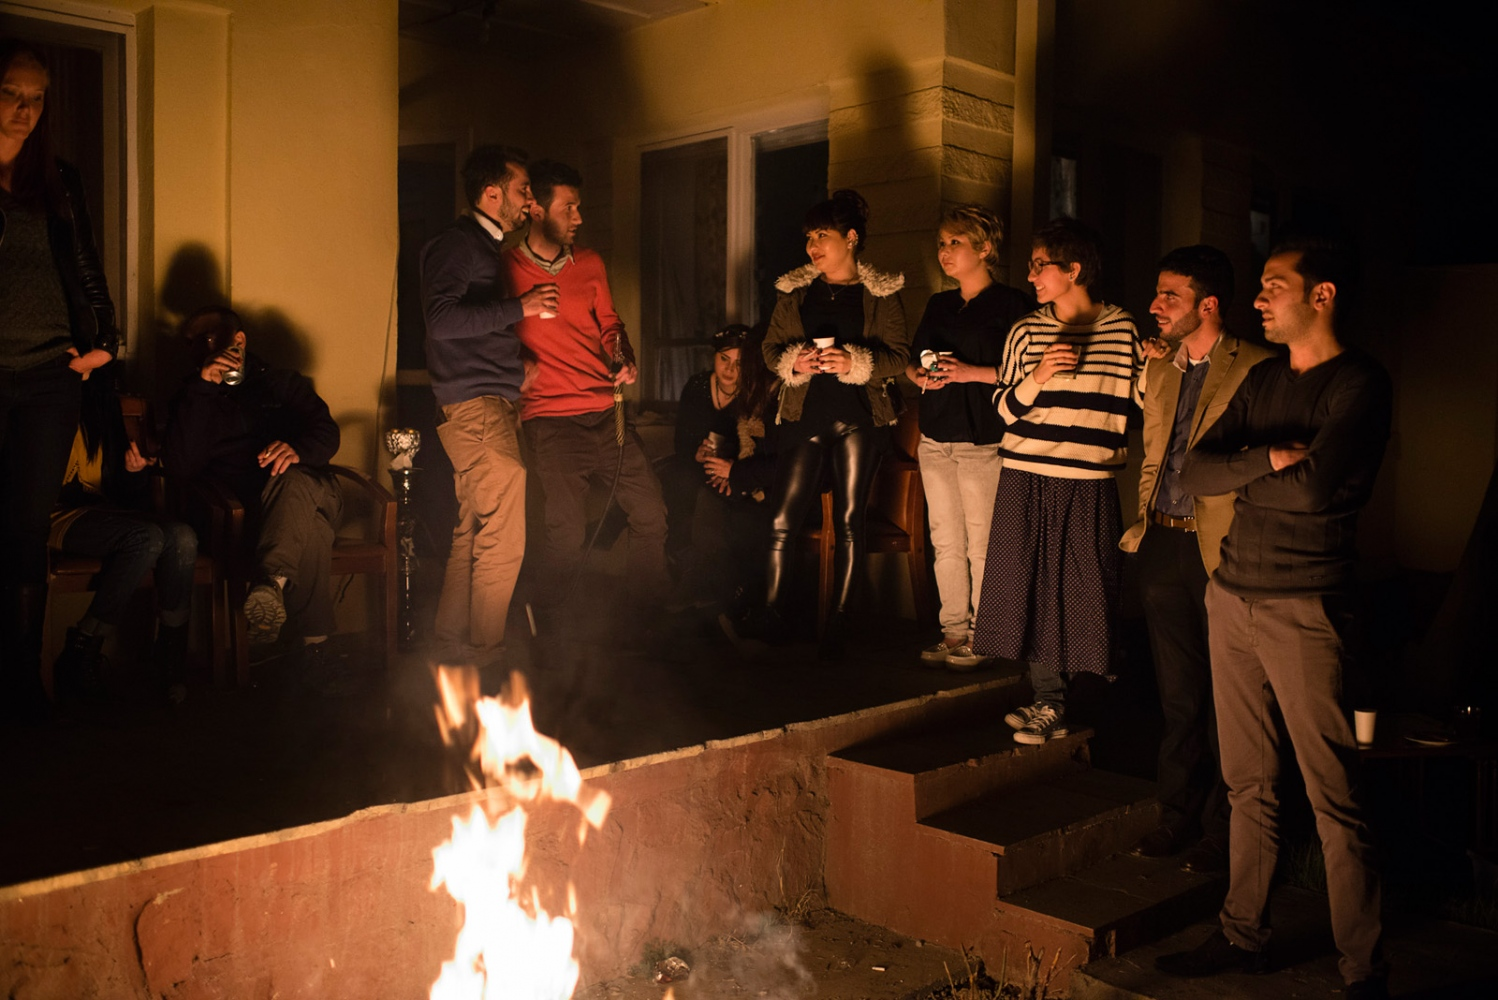 KABUL, AFGHANISTAN | 2015-03-17 | A group of young afghans, mostly raised in iran, gather around the bonfire at a friends backyard to celebrate 'Chahar Shane Soori', the iranian end-of-year fire festival.